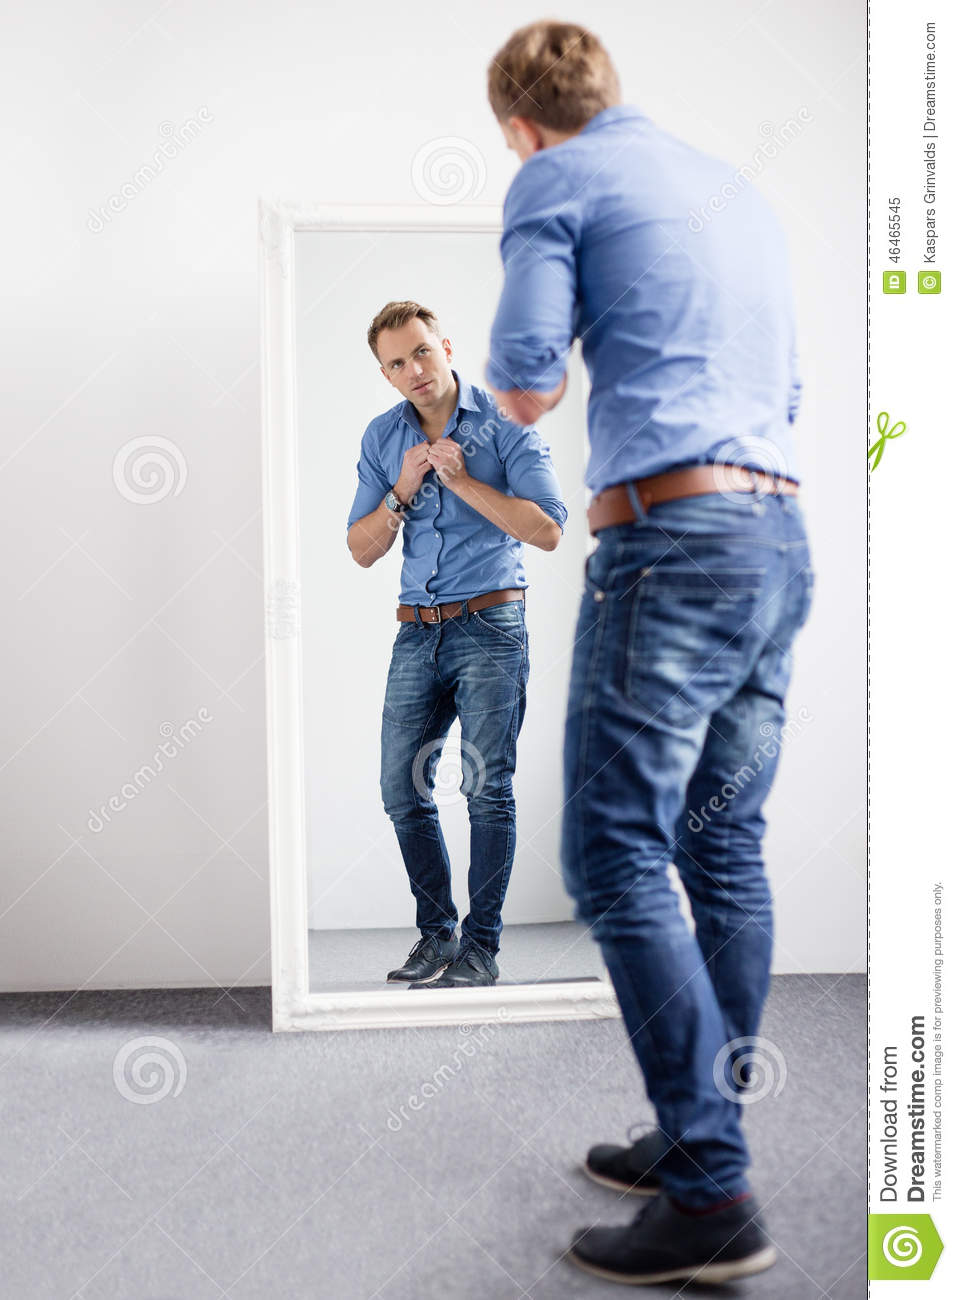 Handsome Man Looking At Himself In Mirror Stock Photo